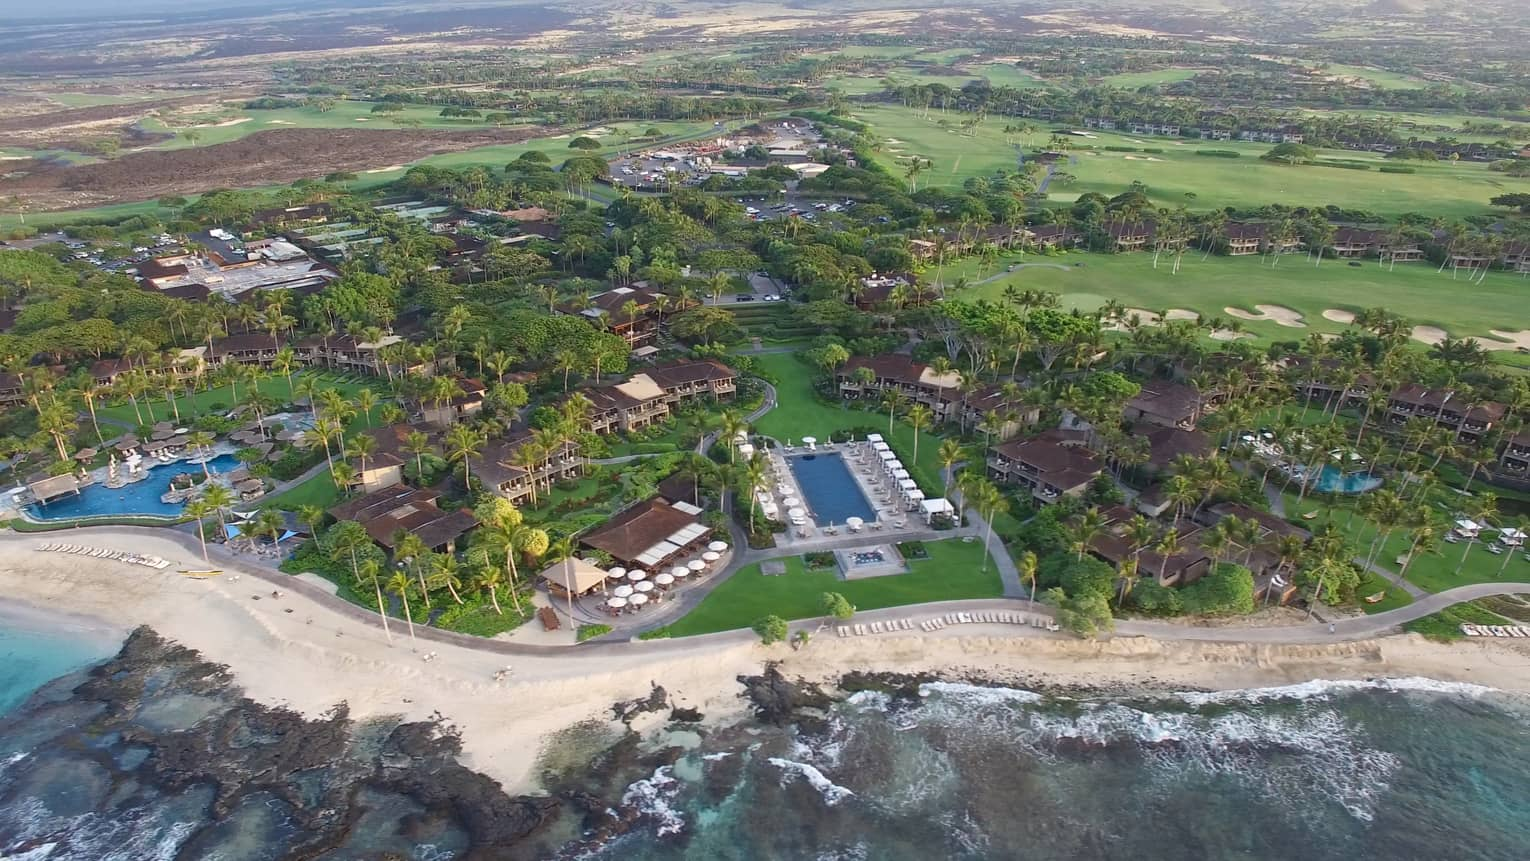 Aerial view of Four Seasons Resort Hualalai buildings, swimming pool, palm trees, beach, coast